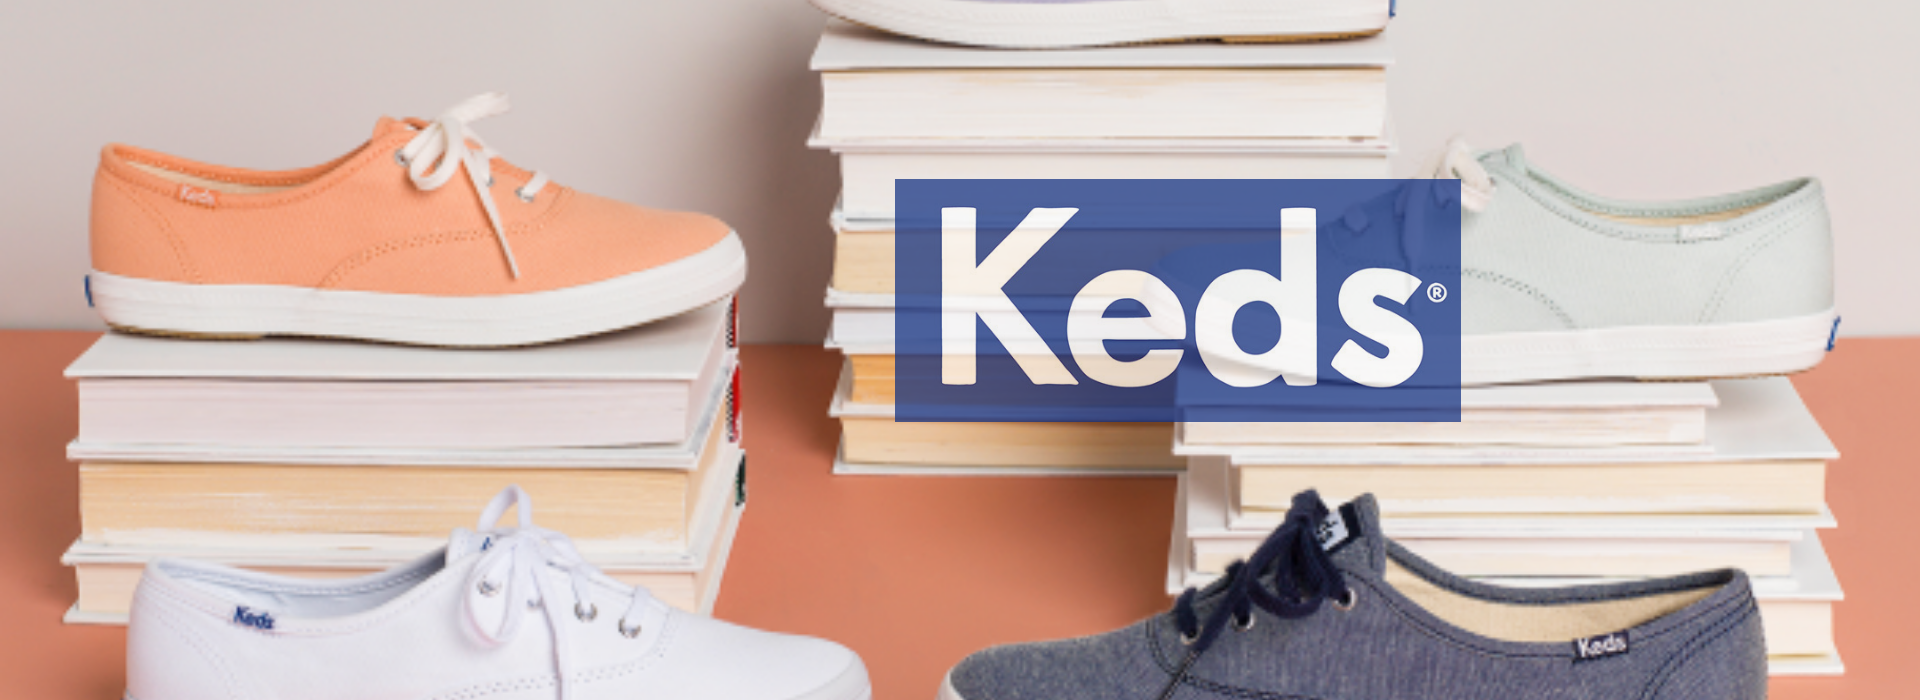 keds-banner-2.png